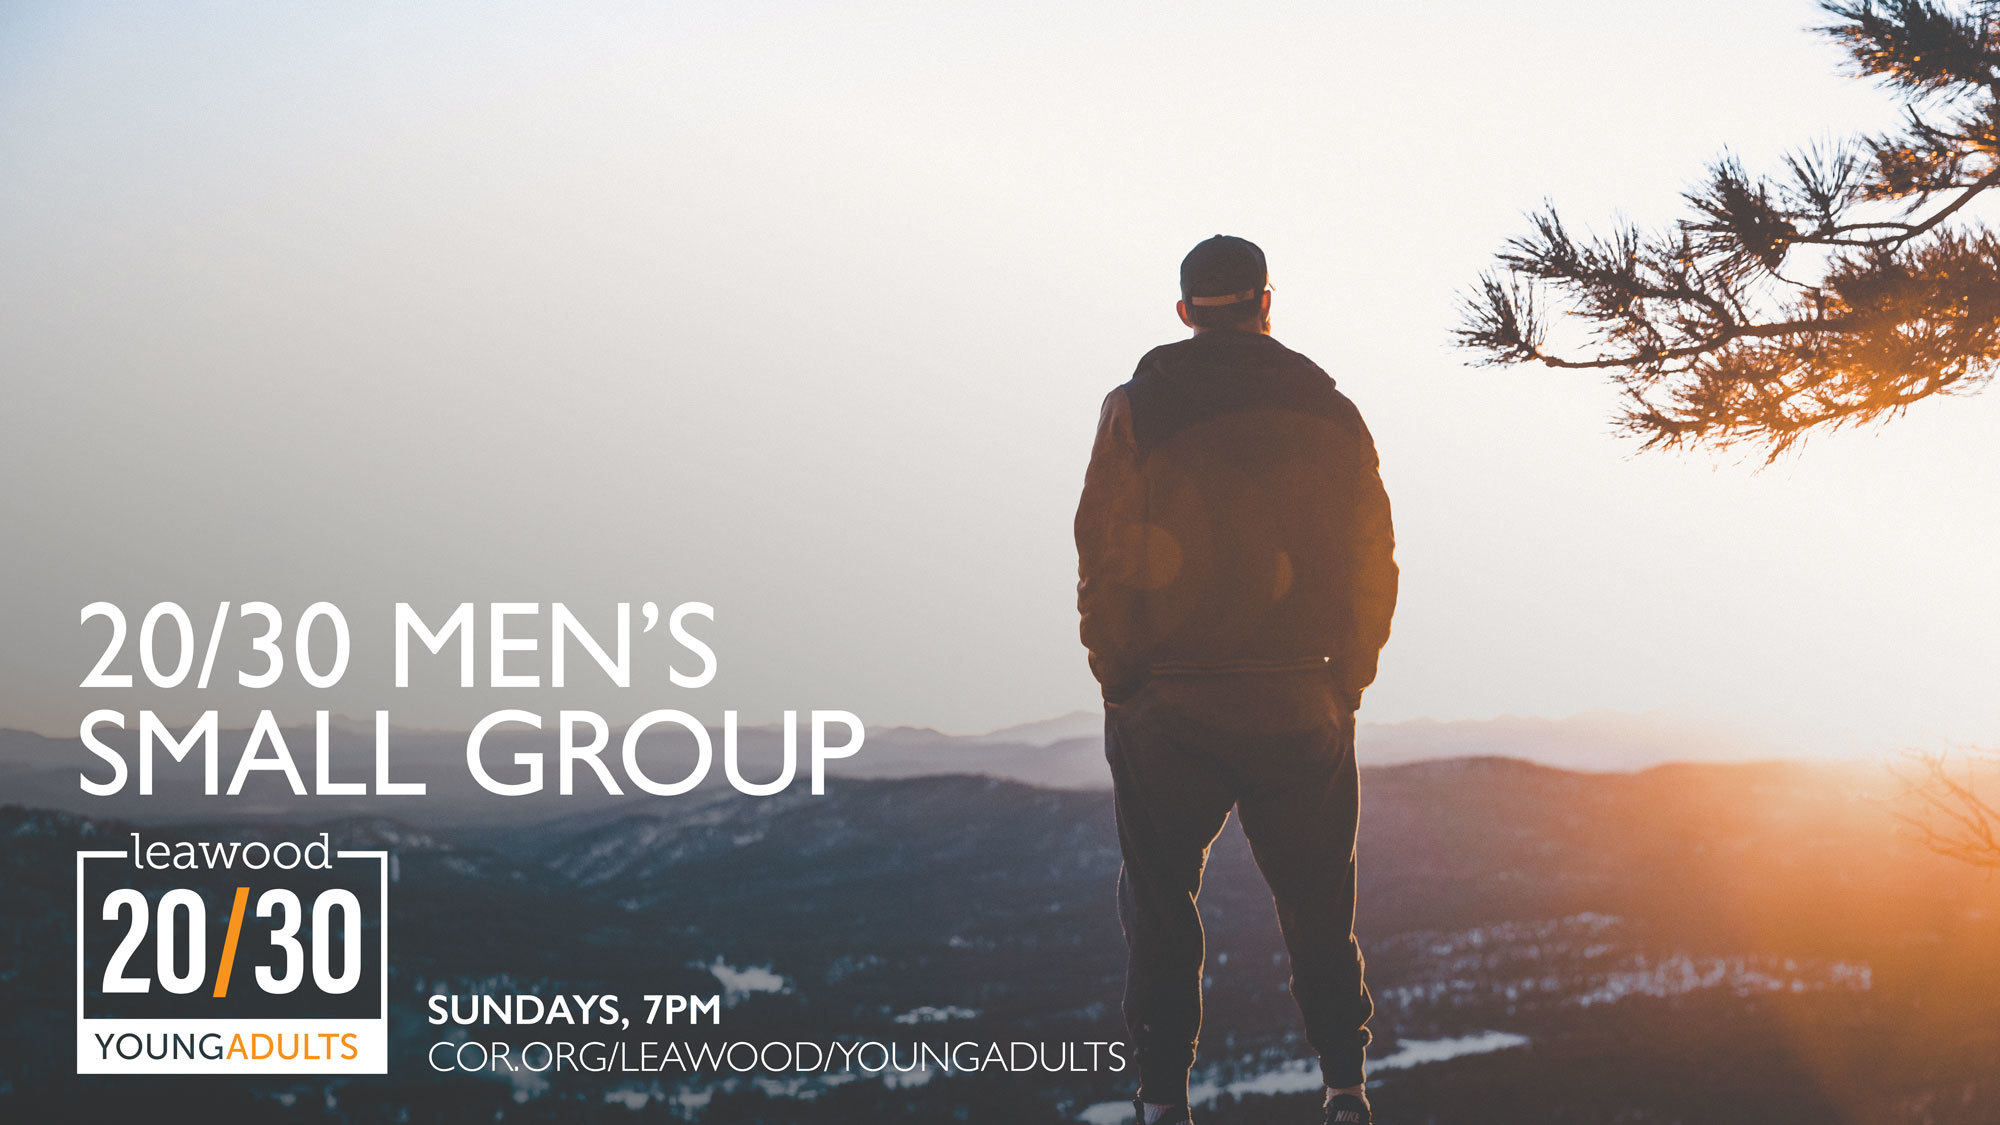 20/30 Men's Small Group